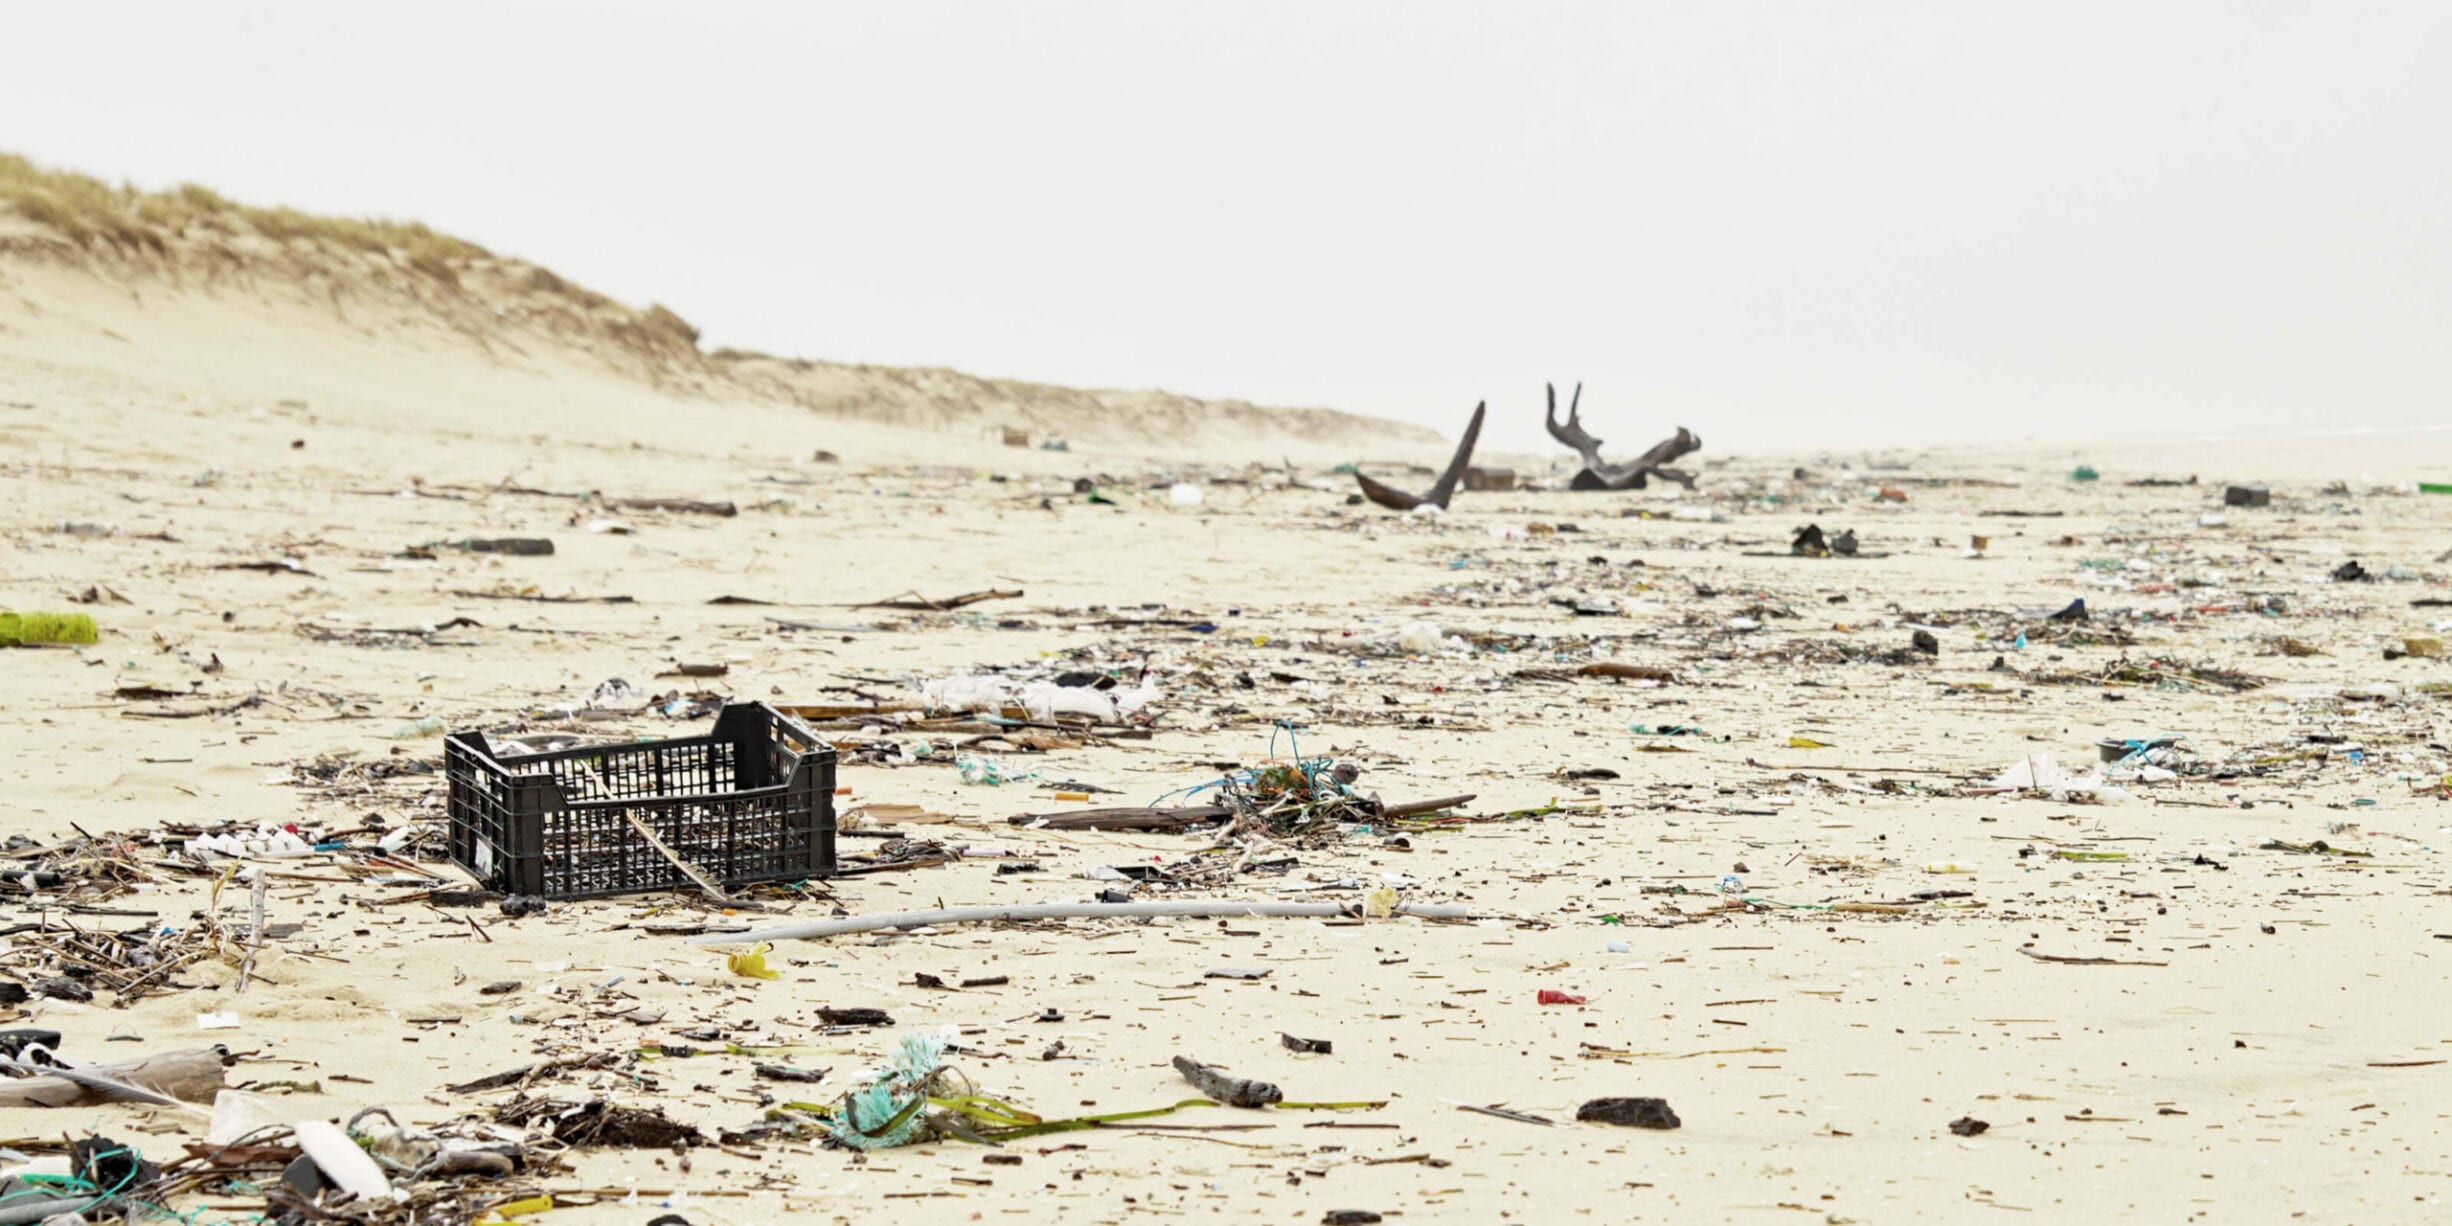 beach littered with trash